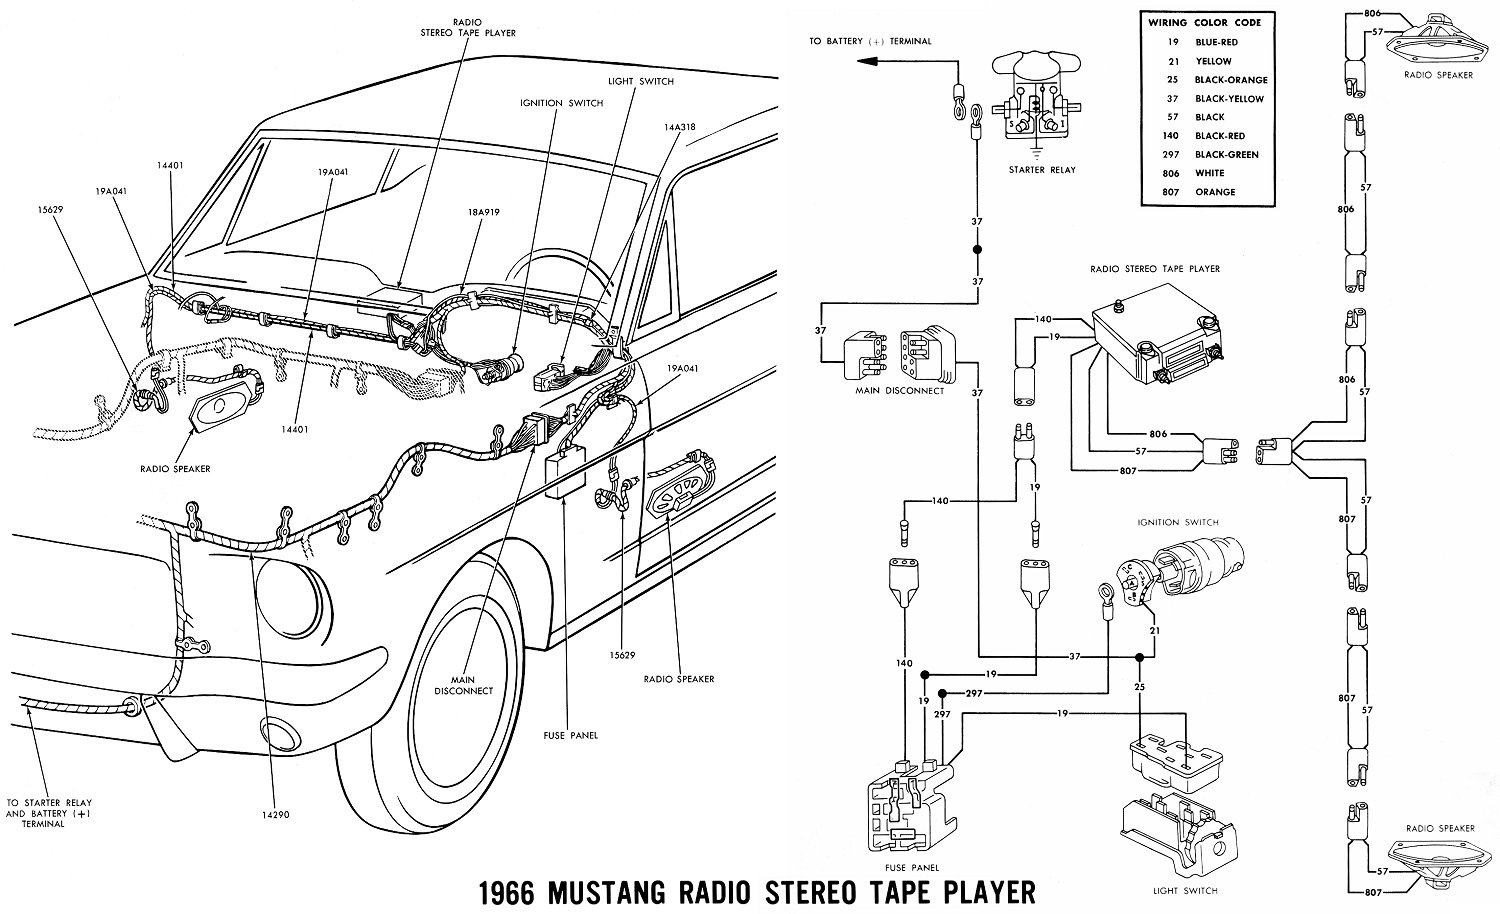 1969 Mustang Wiring Diagram Trusted Diagrams 2004 Ford Vintage Rh Midlife66 Com